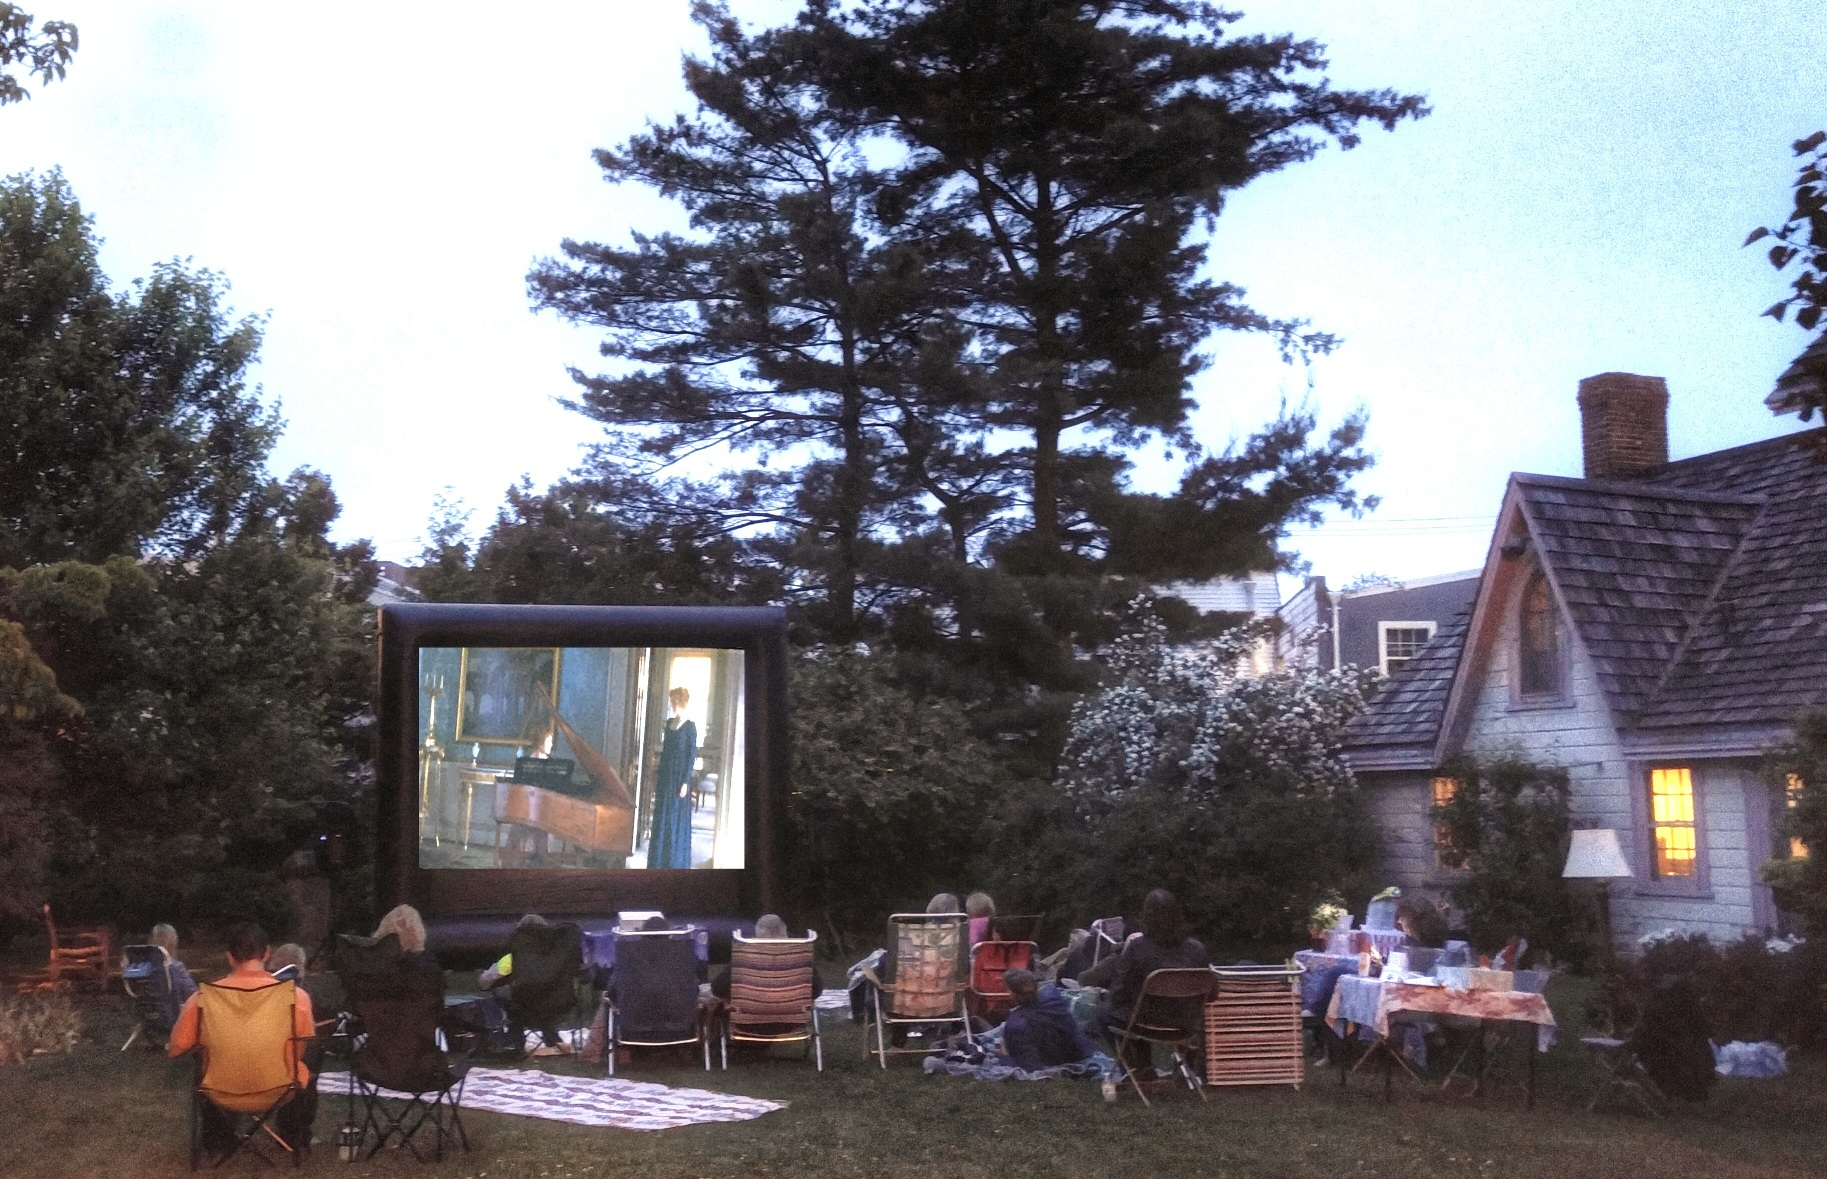 Photograph of Sense & Sensibility being shown in our Victorian Garden